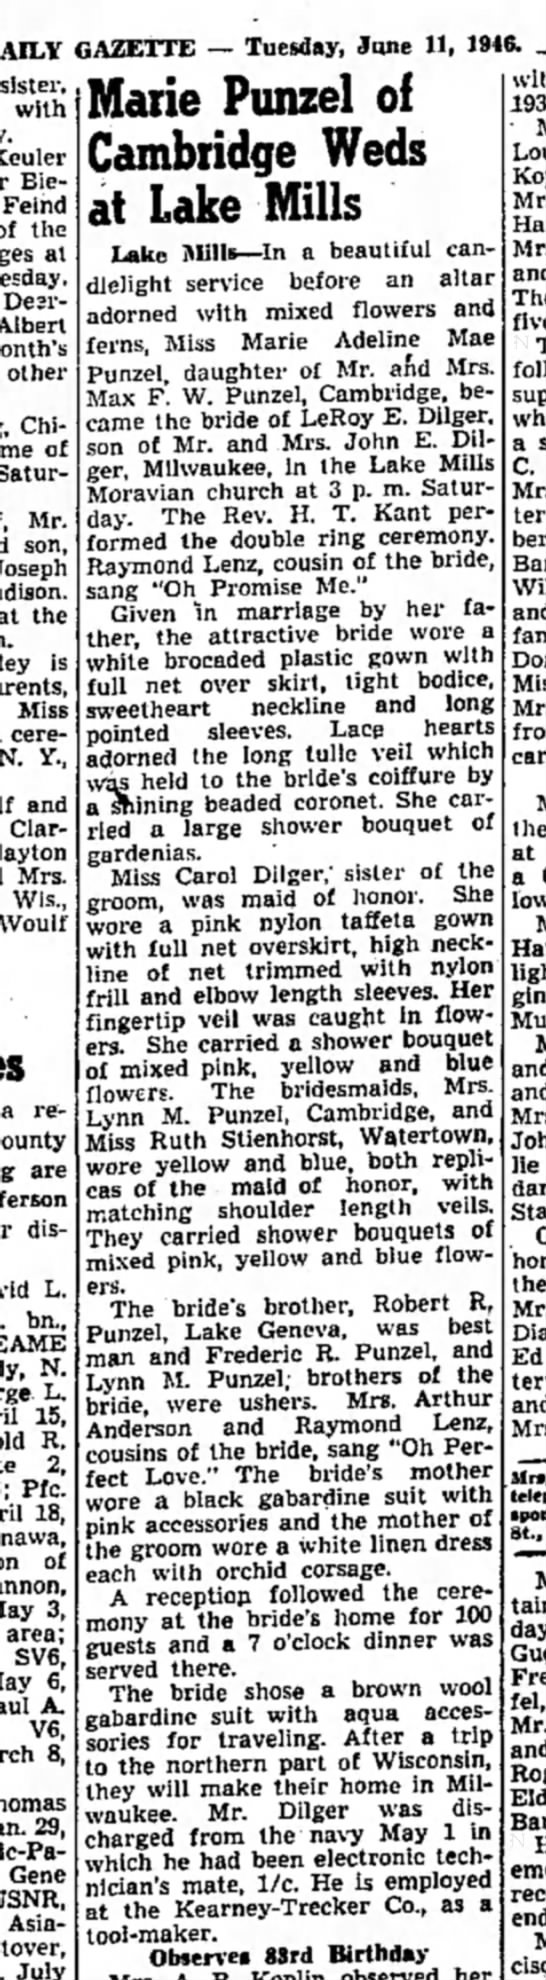 Punzel. Marie wed to Mr. Dilger